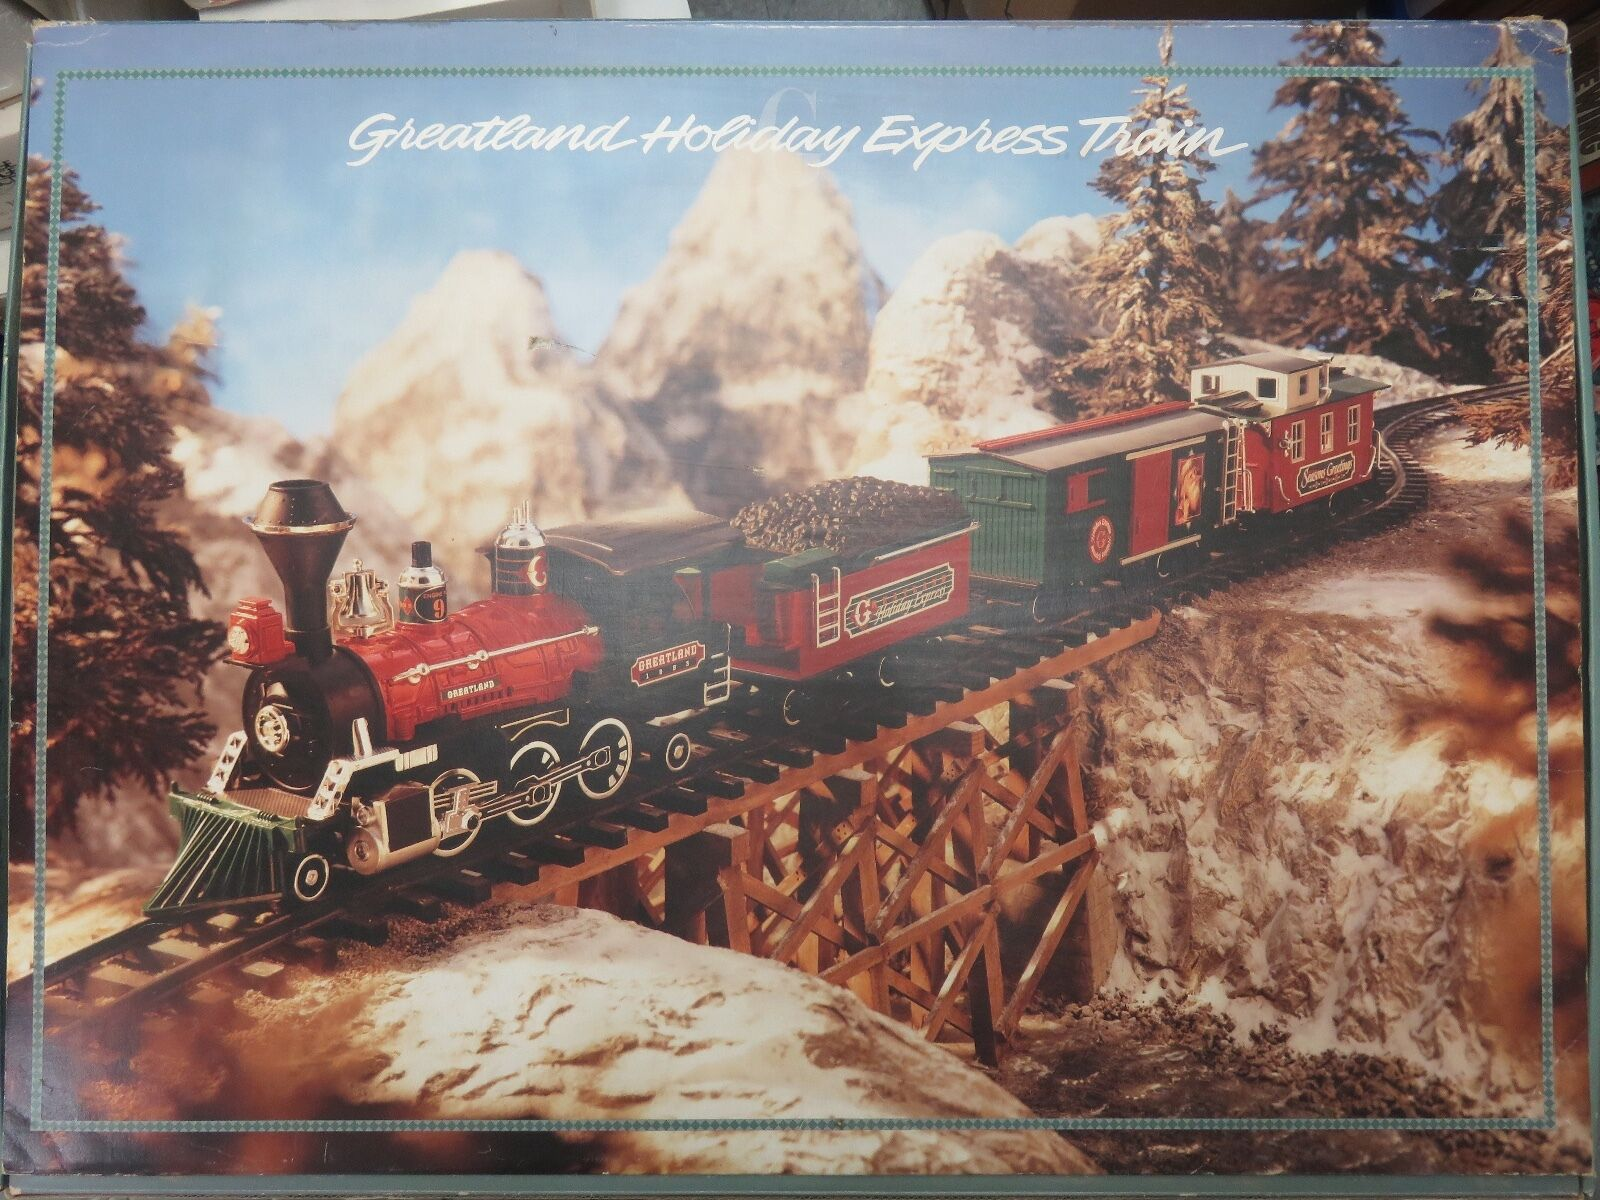 1994 GreatLand Holiday Express -G Gage New Bright Train Stkonster Set